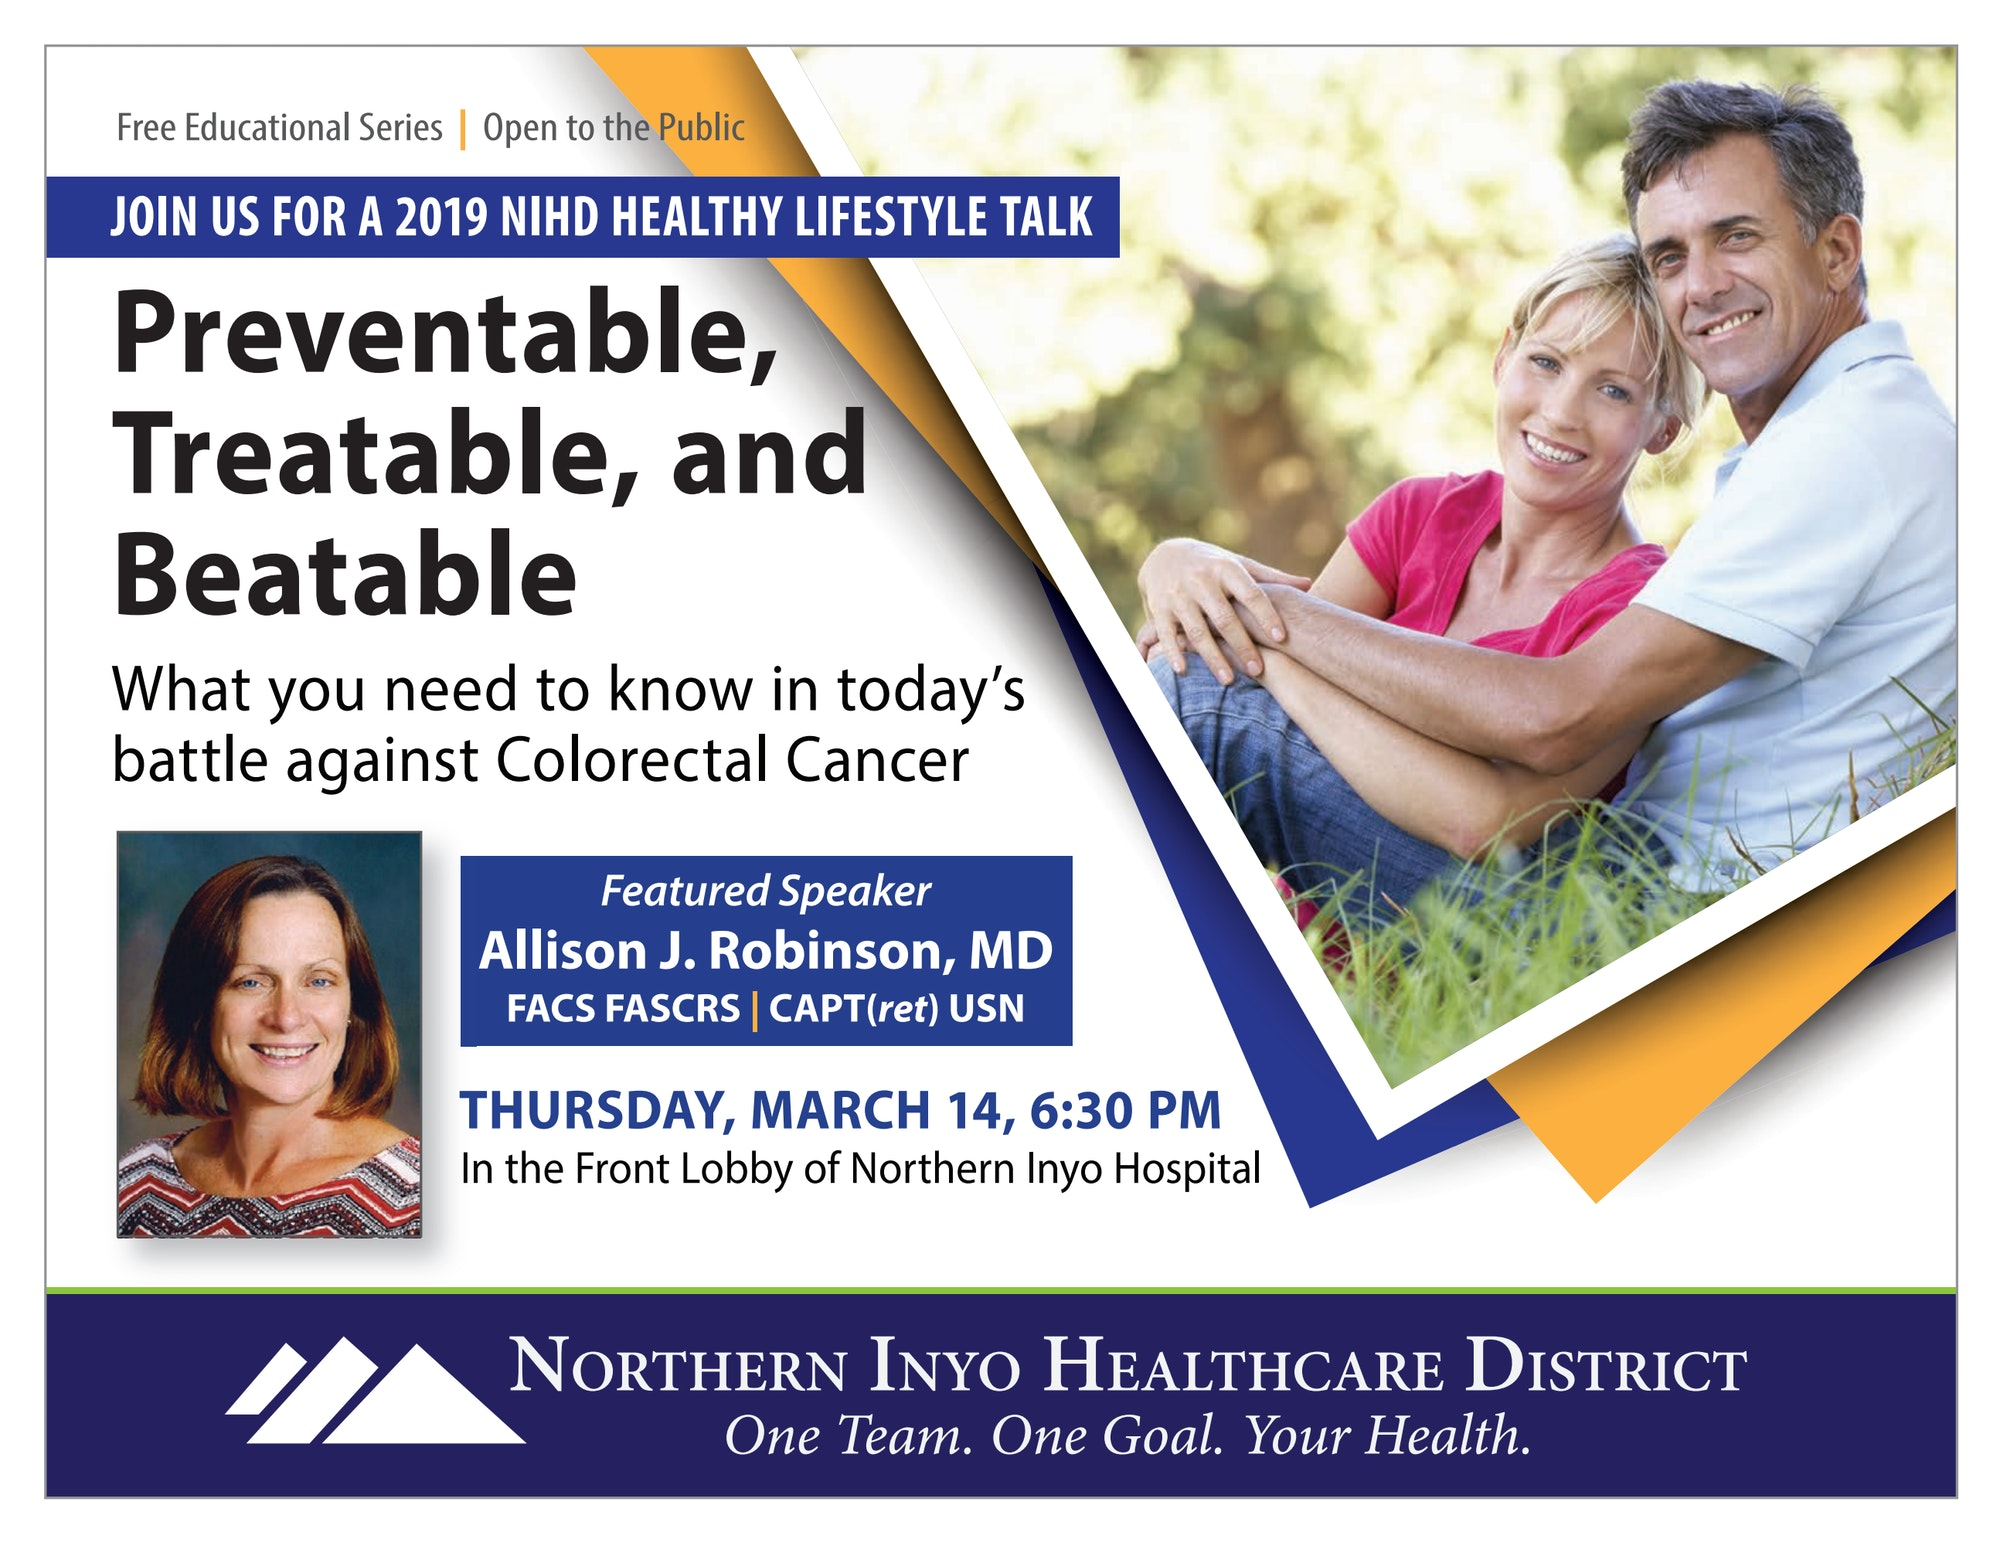 Poster for Colorectal Cancer Talk by Dr. Allison Robinson on March 14, 2019, 6:30 PM, Birch Street Annex